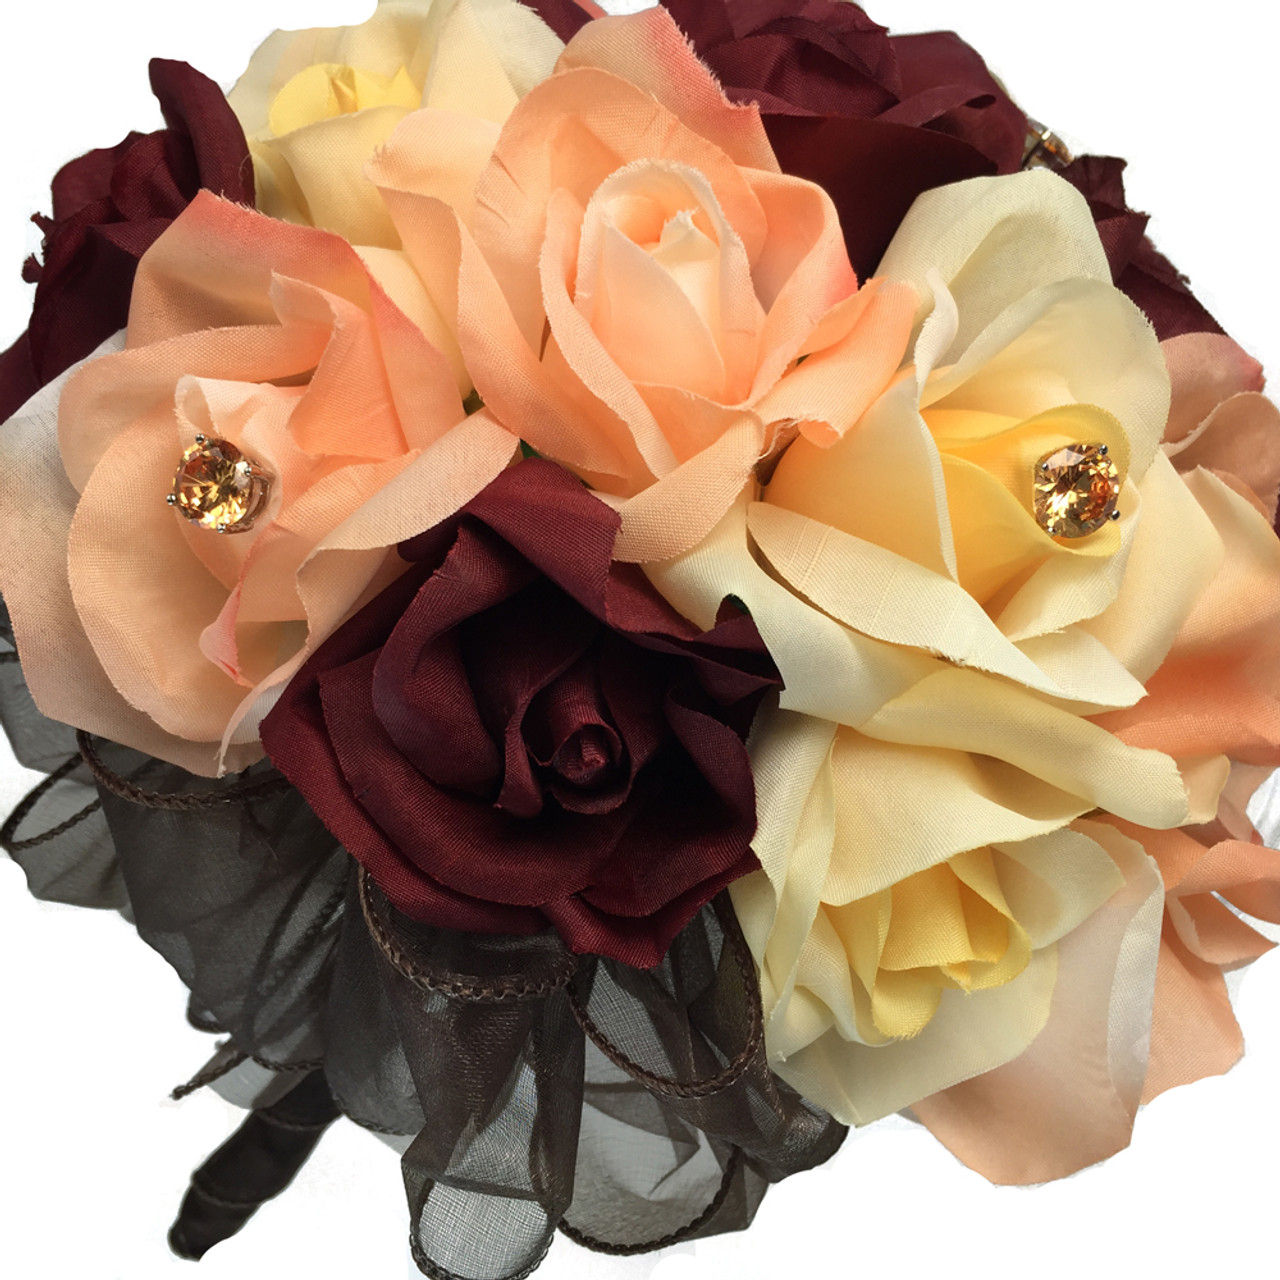 Burgundy Peach Coral Yellow Rose Bouquet Wedding Fall Wedding Flowers Cheap Bridal Bouquets Silk Bridesmaid Bouquets Artificial Wedding Bouquets Two Dozen Roses Thebridesbouquet Com